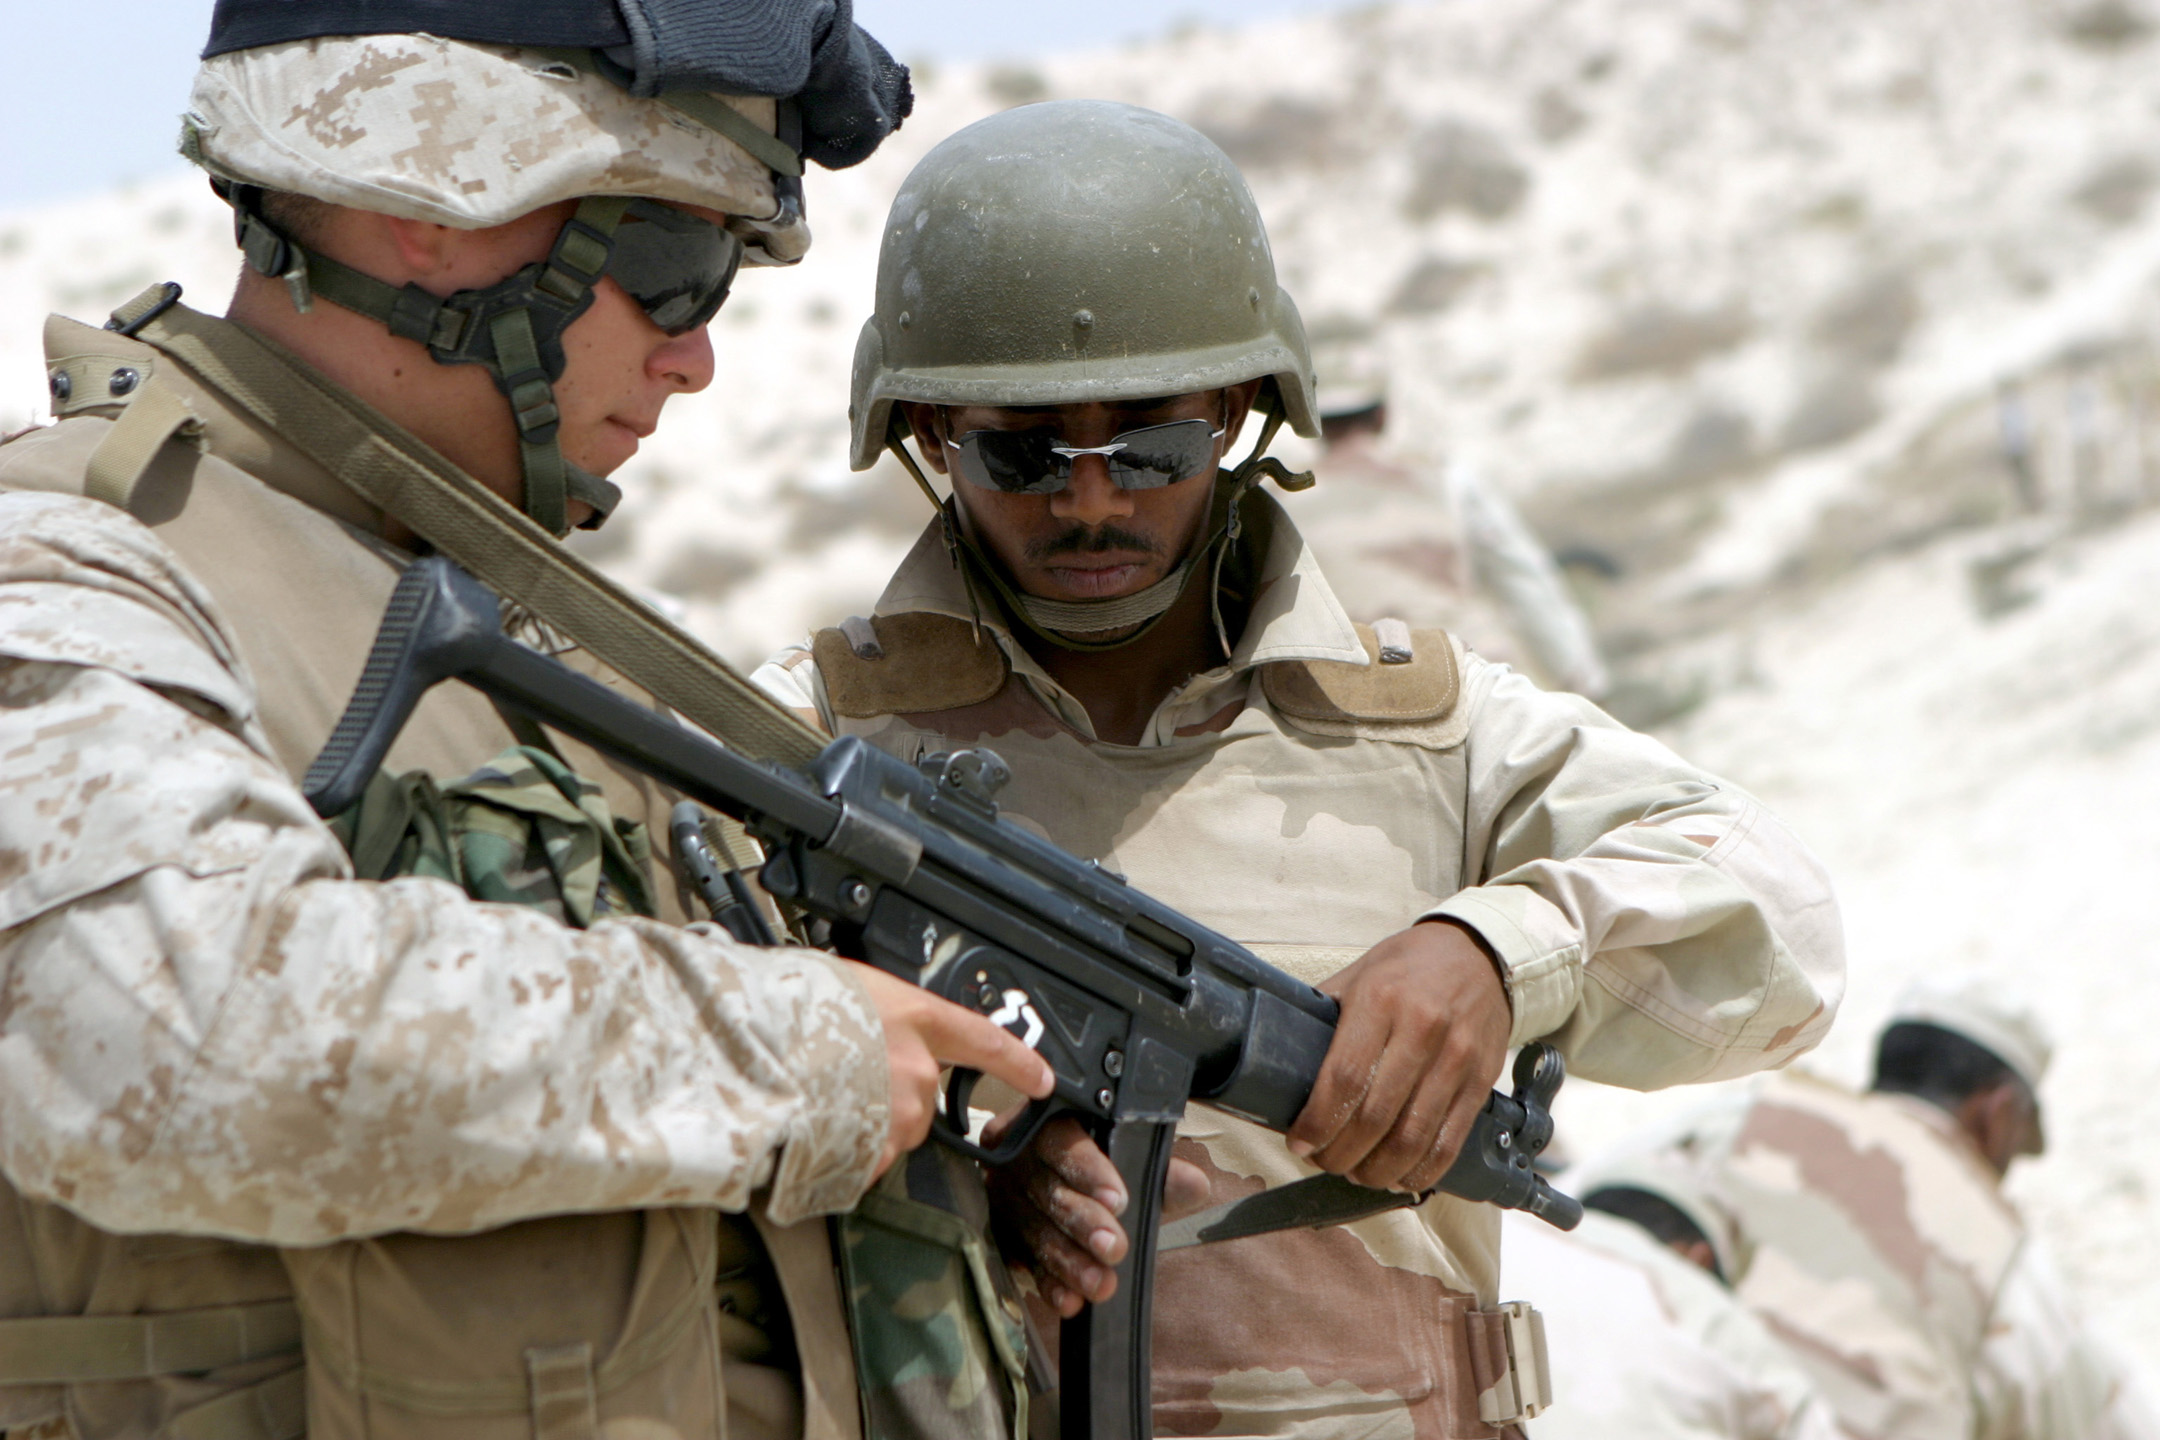 File:MP5-USMC-2Men.jpg - Wikimedia Commons